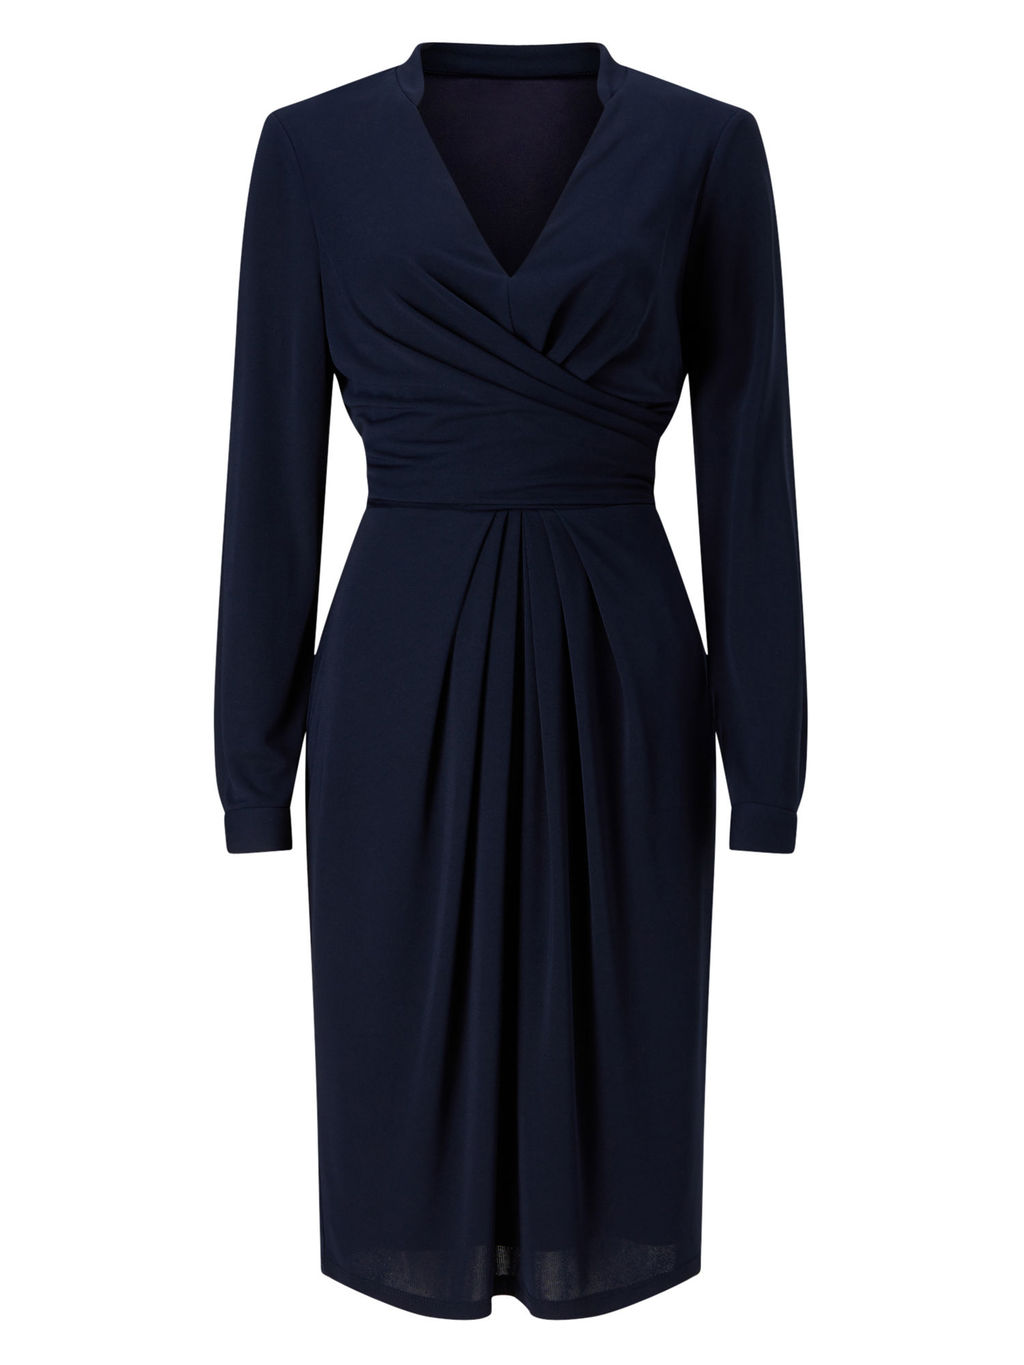 Drape And Pleat Jersey Dress - style: faux wrap/wrap; neckline: v-neck; pattern: plain; predominant colour: navy; occasions: evening; length: on the knee; fit: body skimming; fibres: polyester/polyamide - 100%; sleeve length: long sleeve; sleeve style: standard; pattern type: fabric; texture group: jersey - stretchy/drapey; season: s/s 2016; wardrobe: event